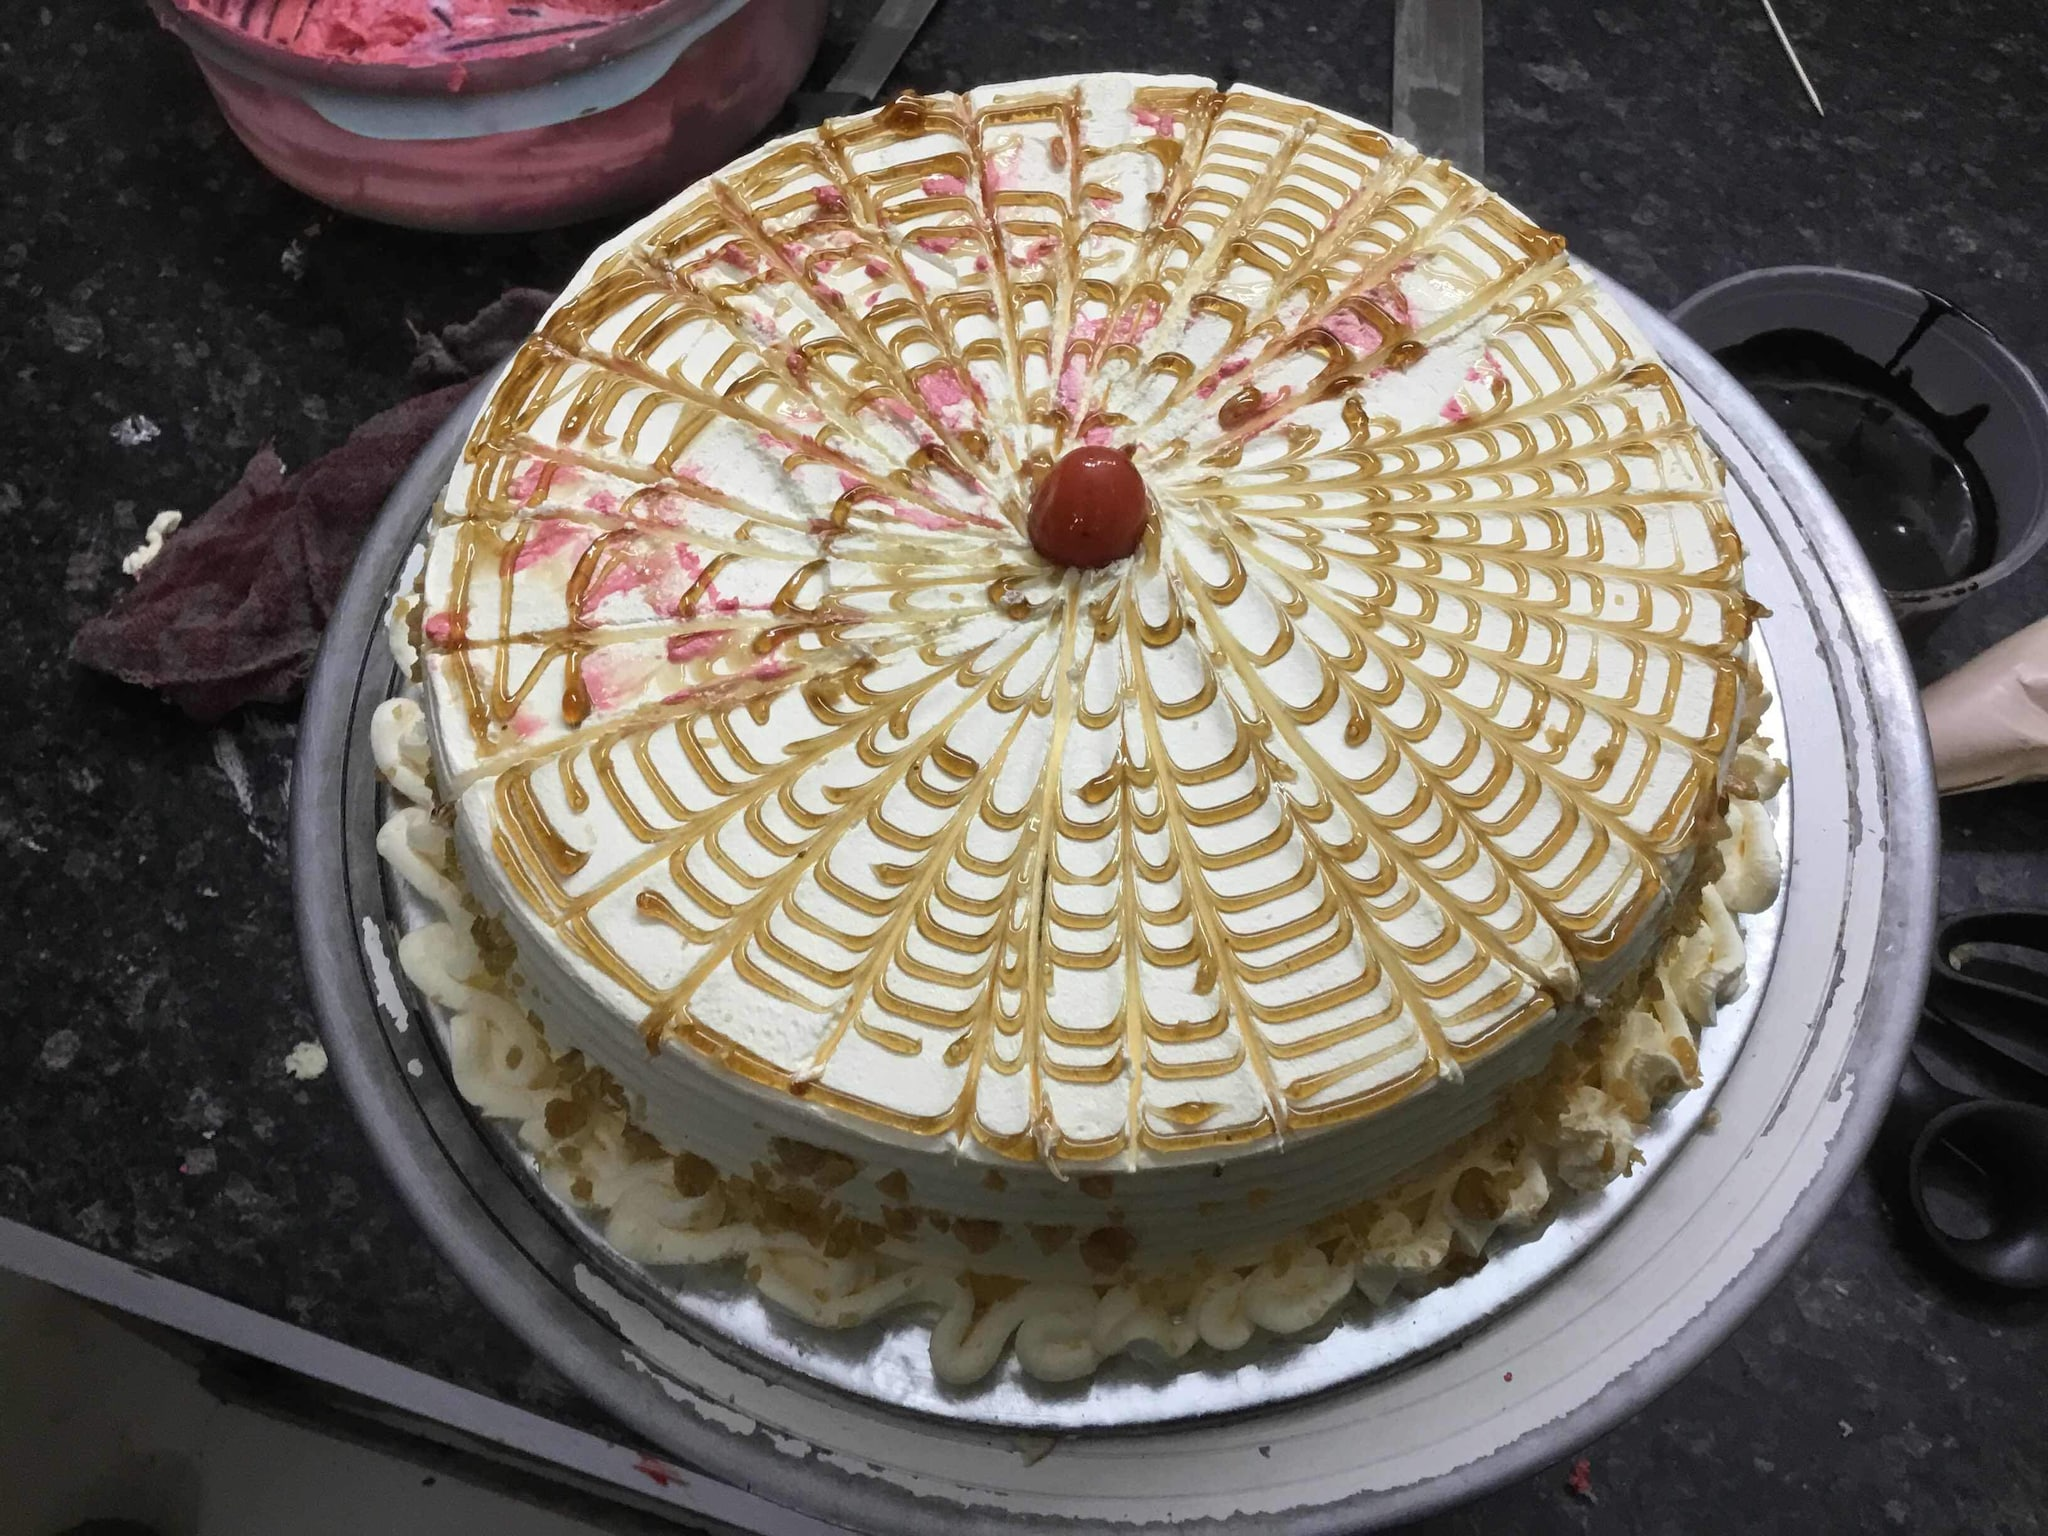 Find List Of The Cake Point In Gurgaon Sector 37   Cake Point Cake Shops  Delhi   Justdial